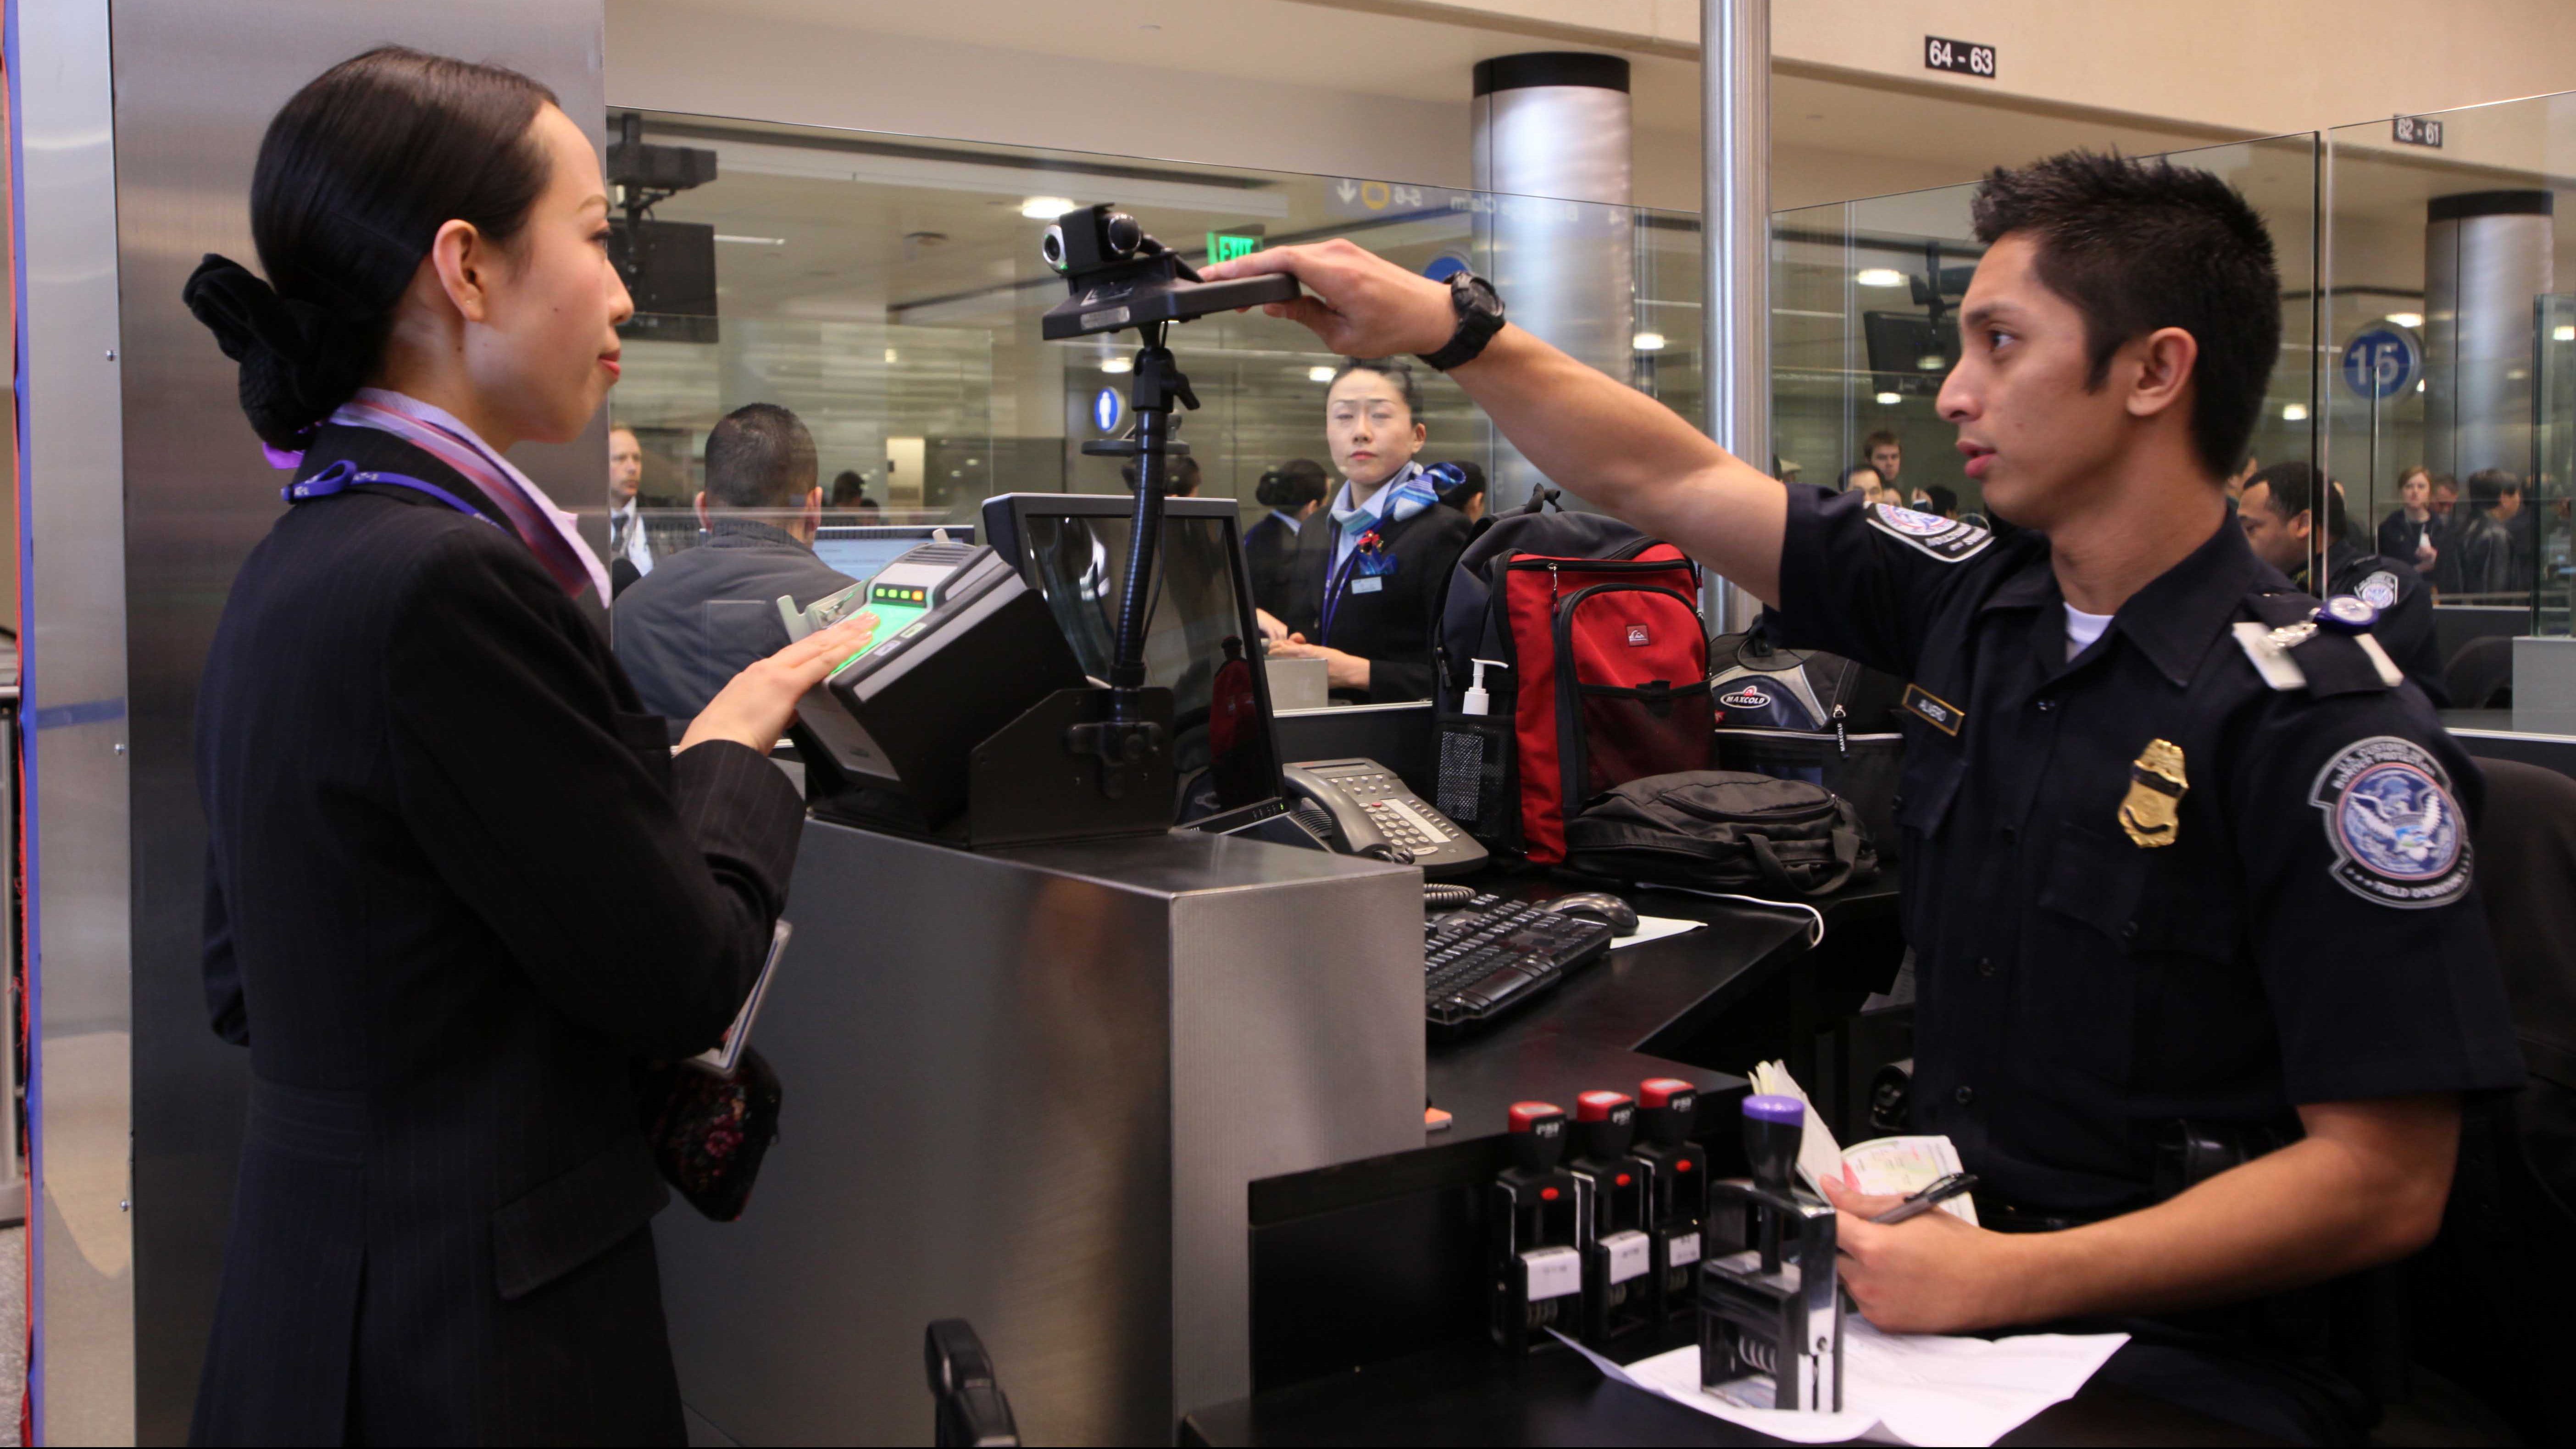 U.S Customs and Border Protection Officer Alveno Berenill takes photos of travelers as they arrive at Los Angeles International Airport on Thursday, Dec 10, 2009.